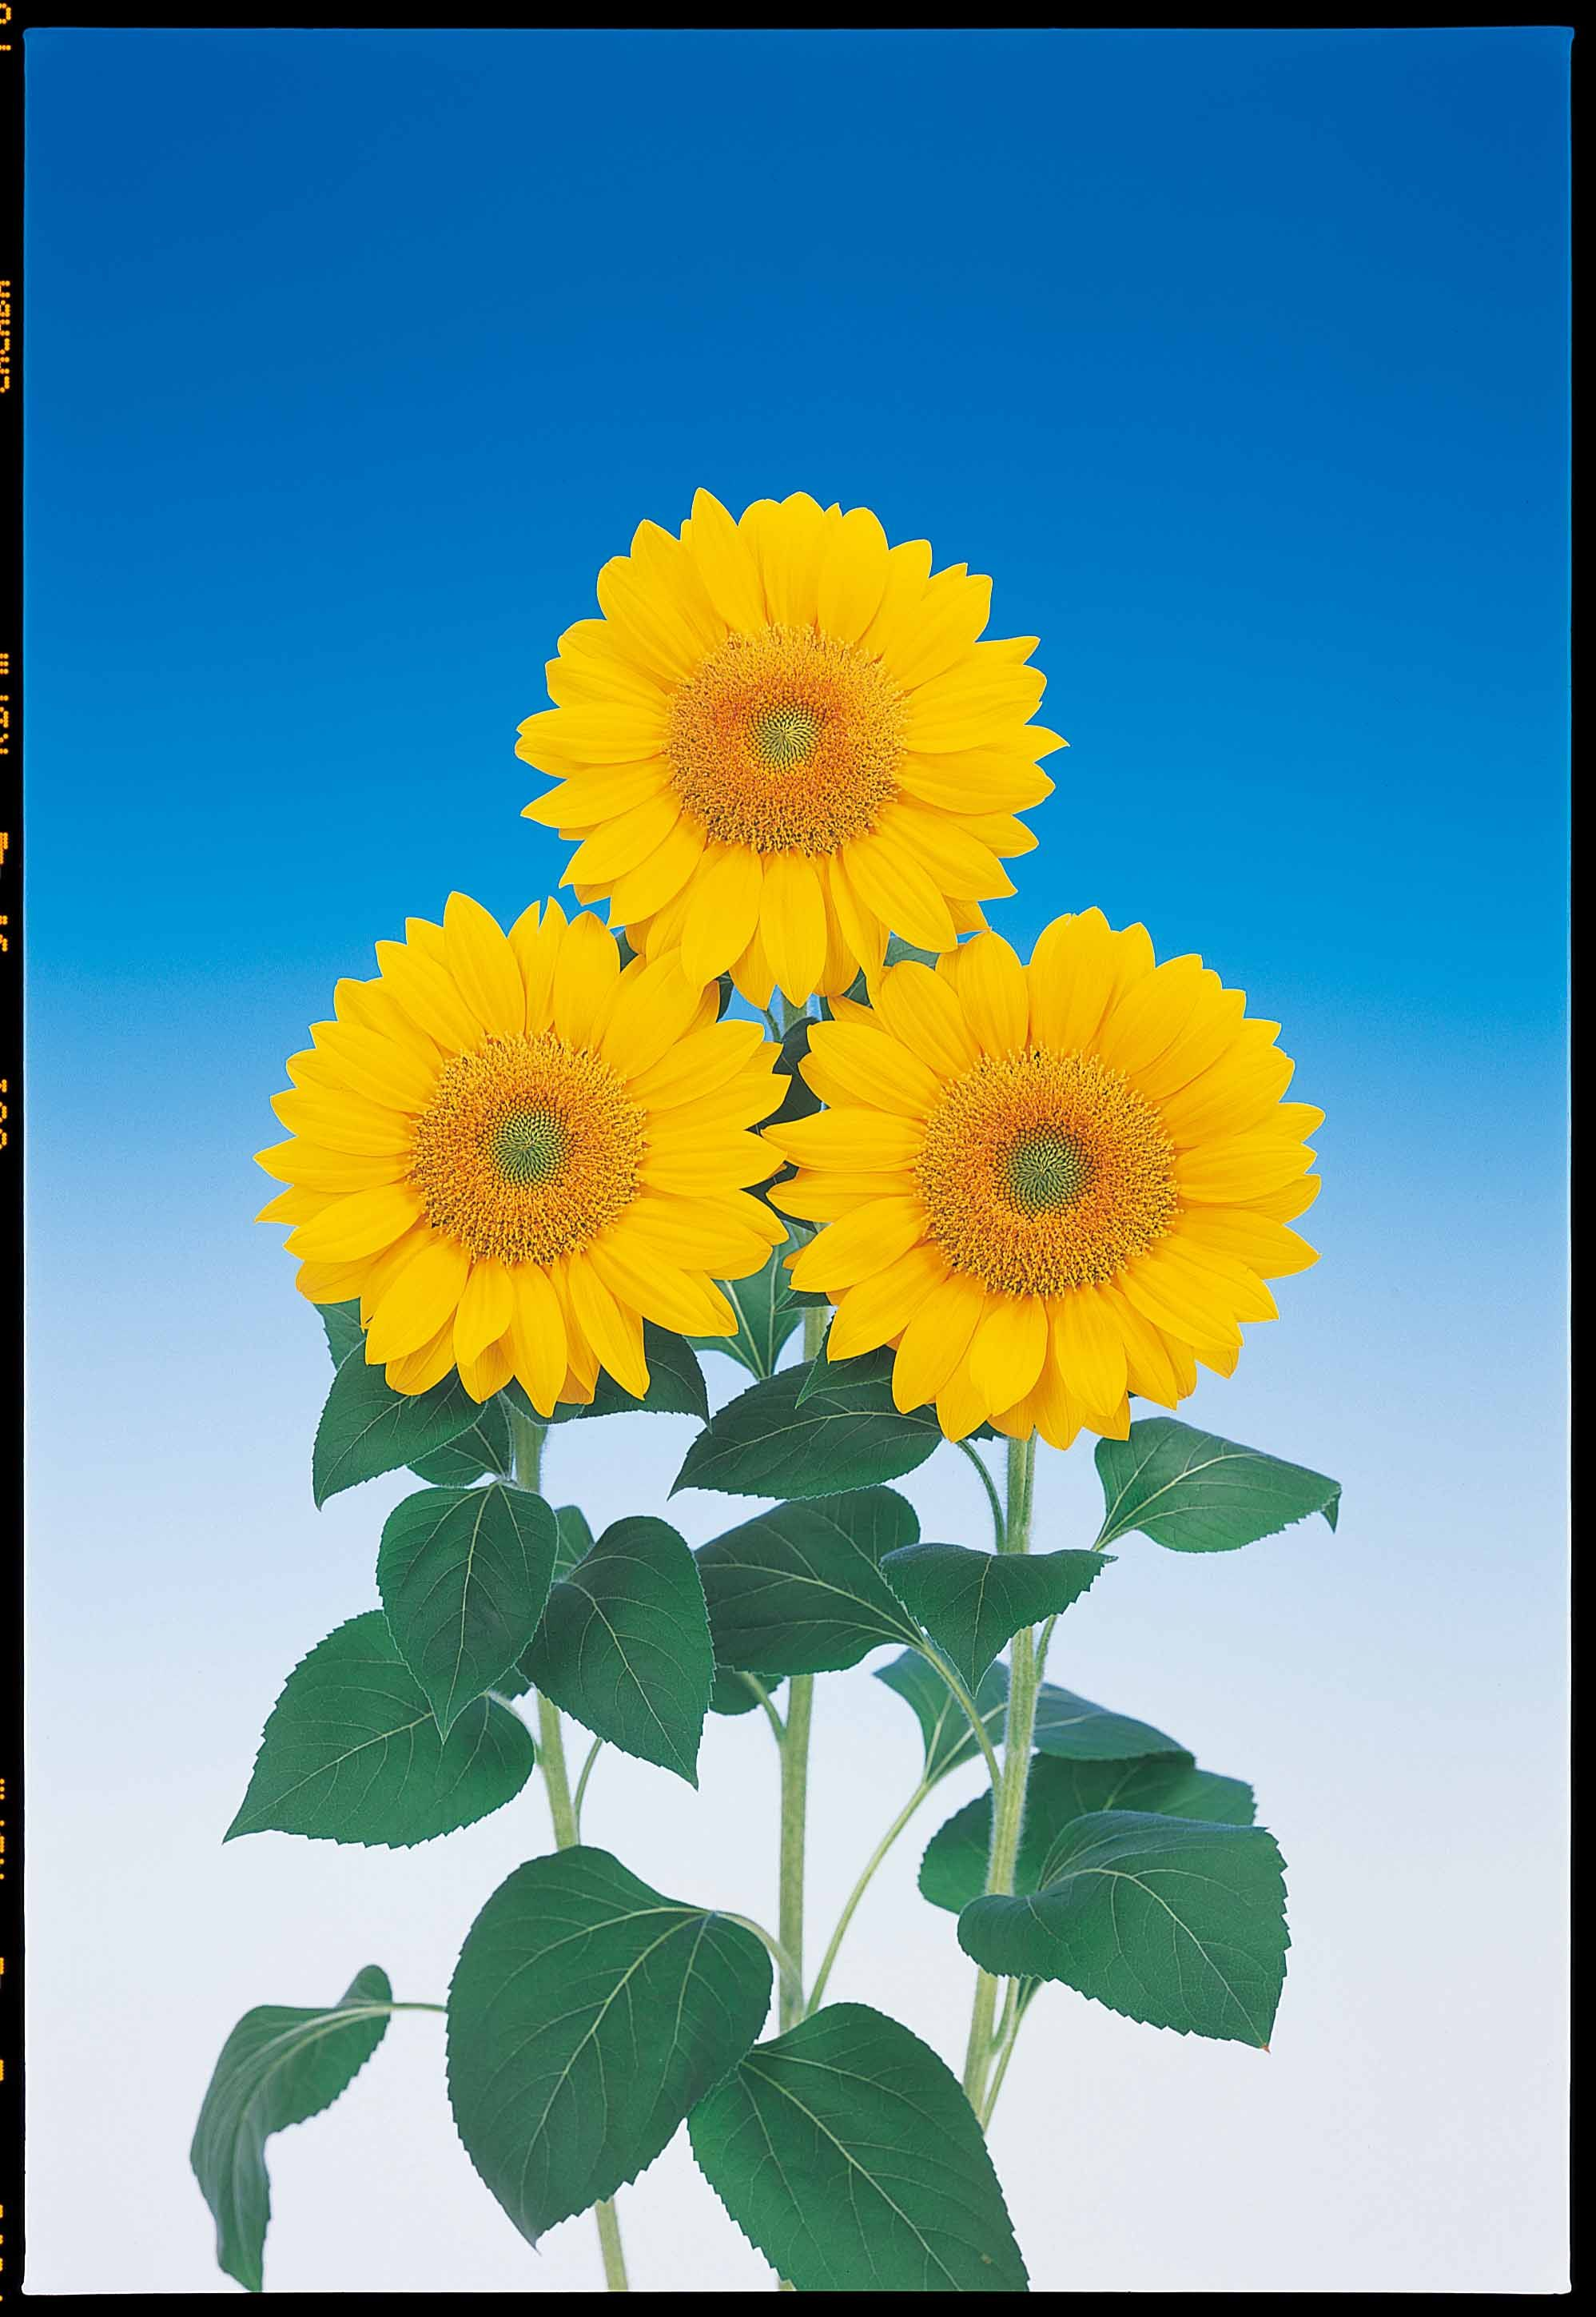 Sunflower Vincents Fresh This Variety Has A Green Center